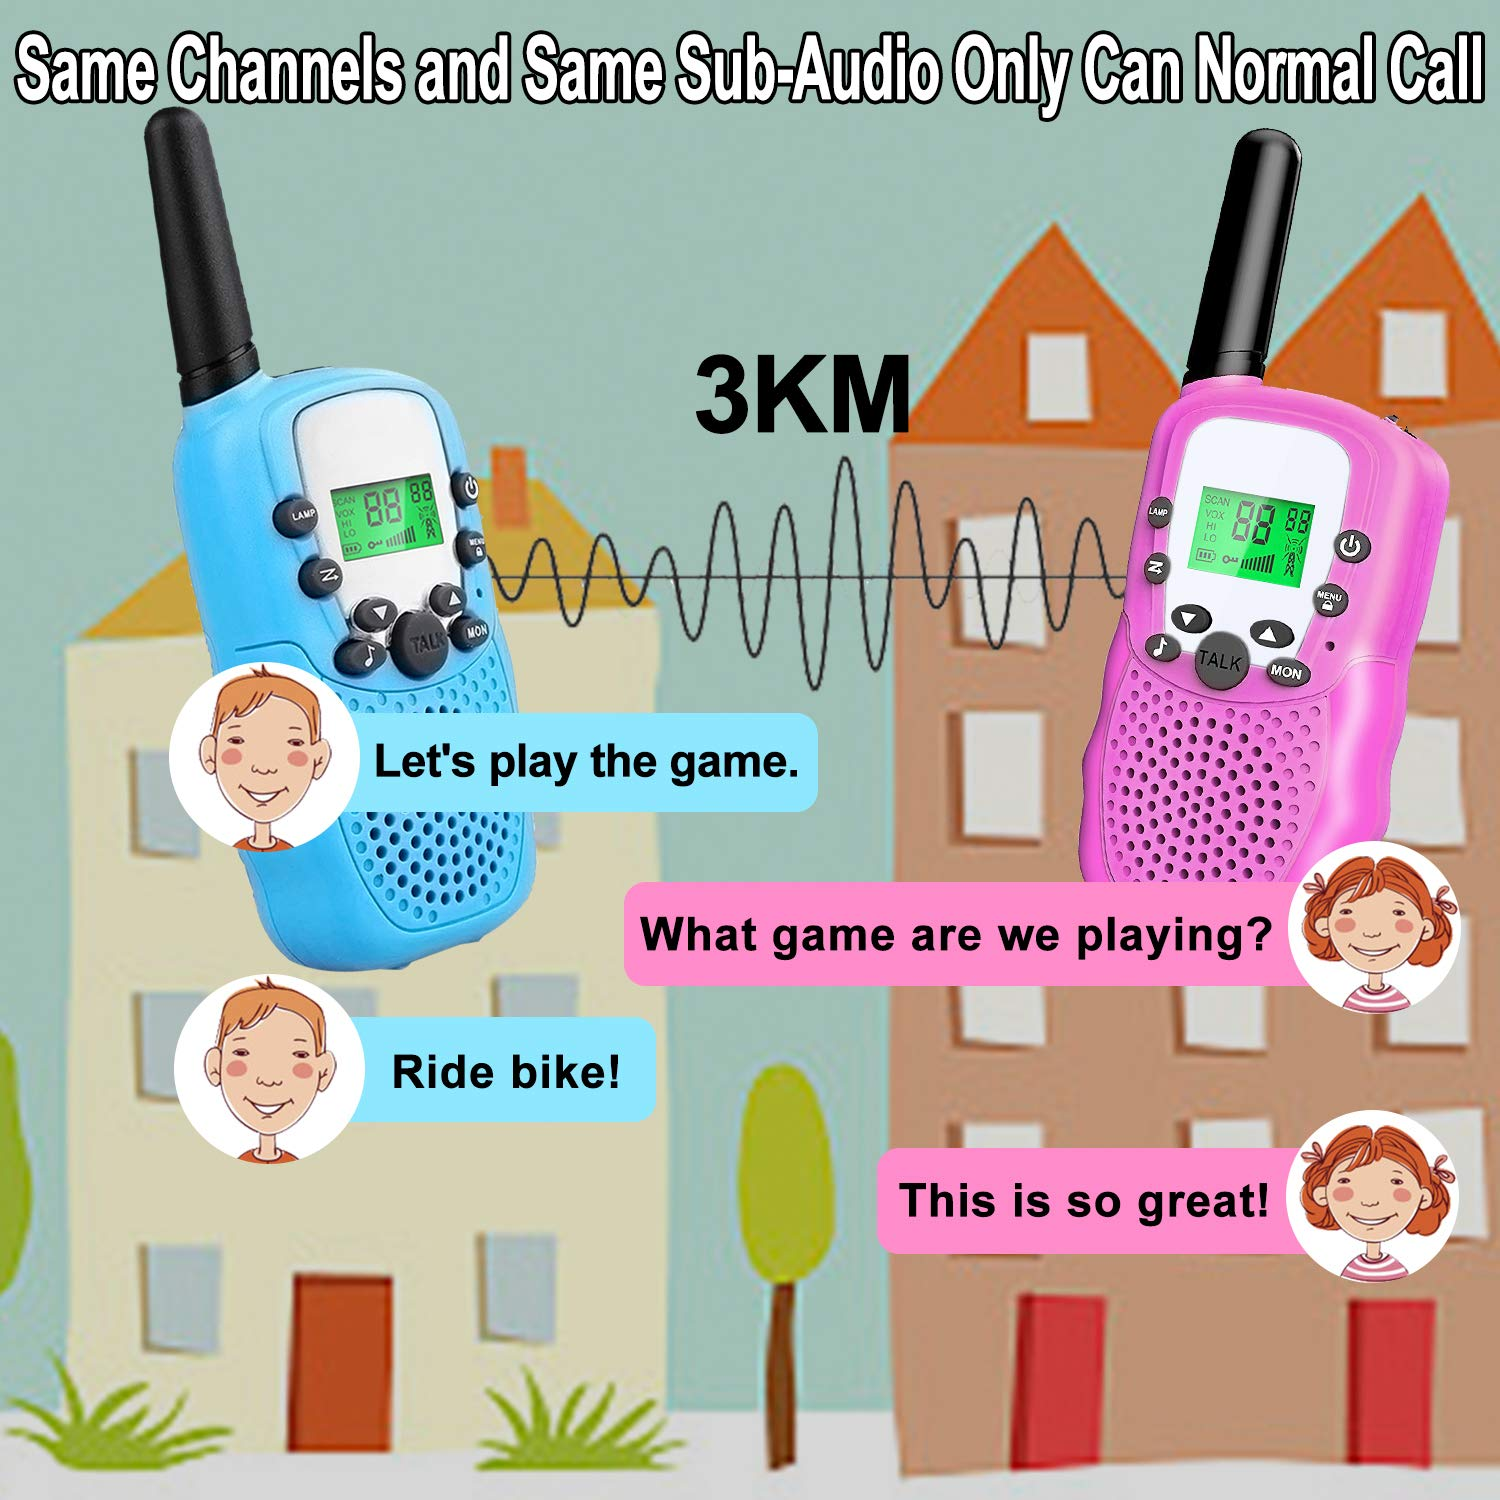 4 Pack Kids Walkie Talkies - 22 Channels 2 Way Radio Long Range Kids Toys, Handheld Child Walkie Talkies for Boys Girls with Flashlight for Sport Outdoor Camping Hiking Prime Electronic Toy Gifts by AMENON (Image #3)